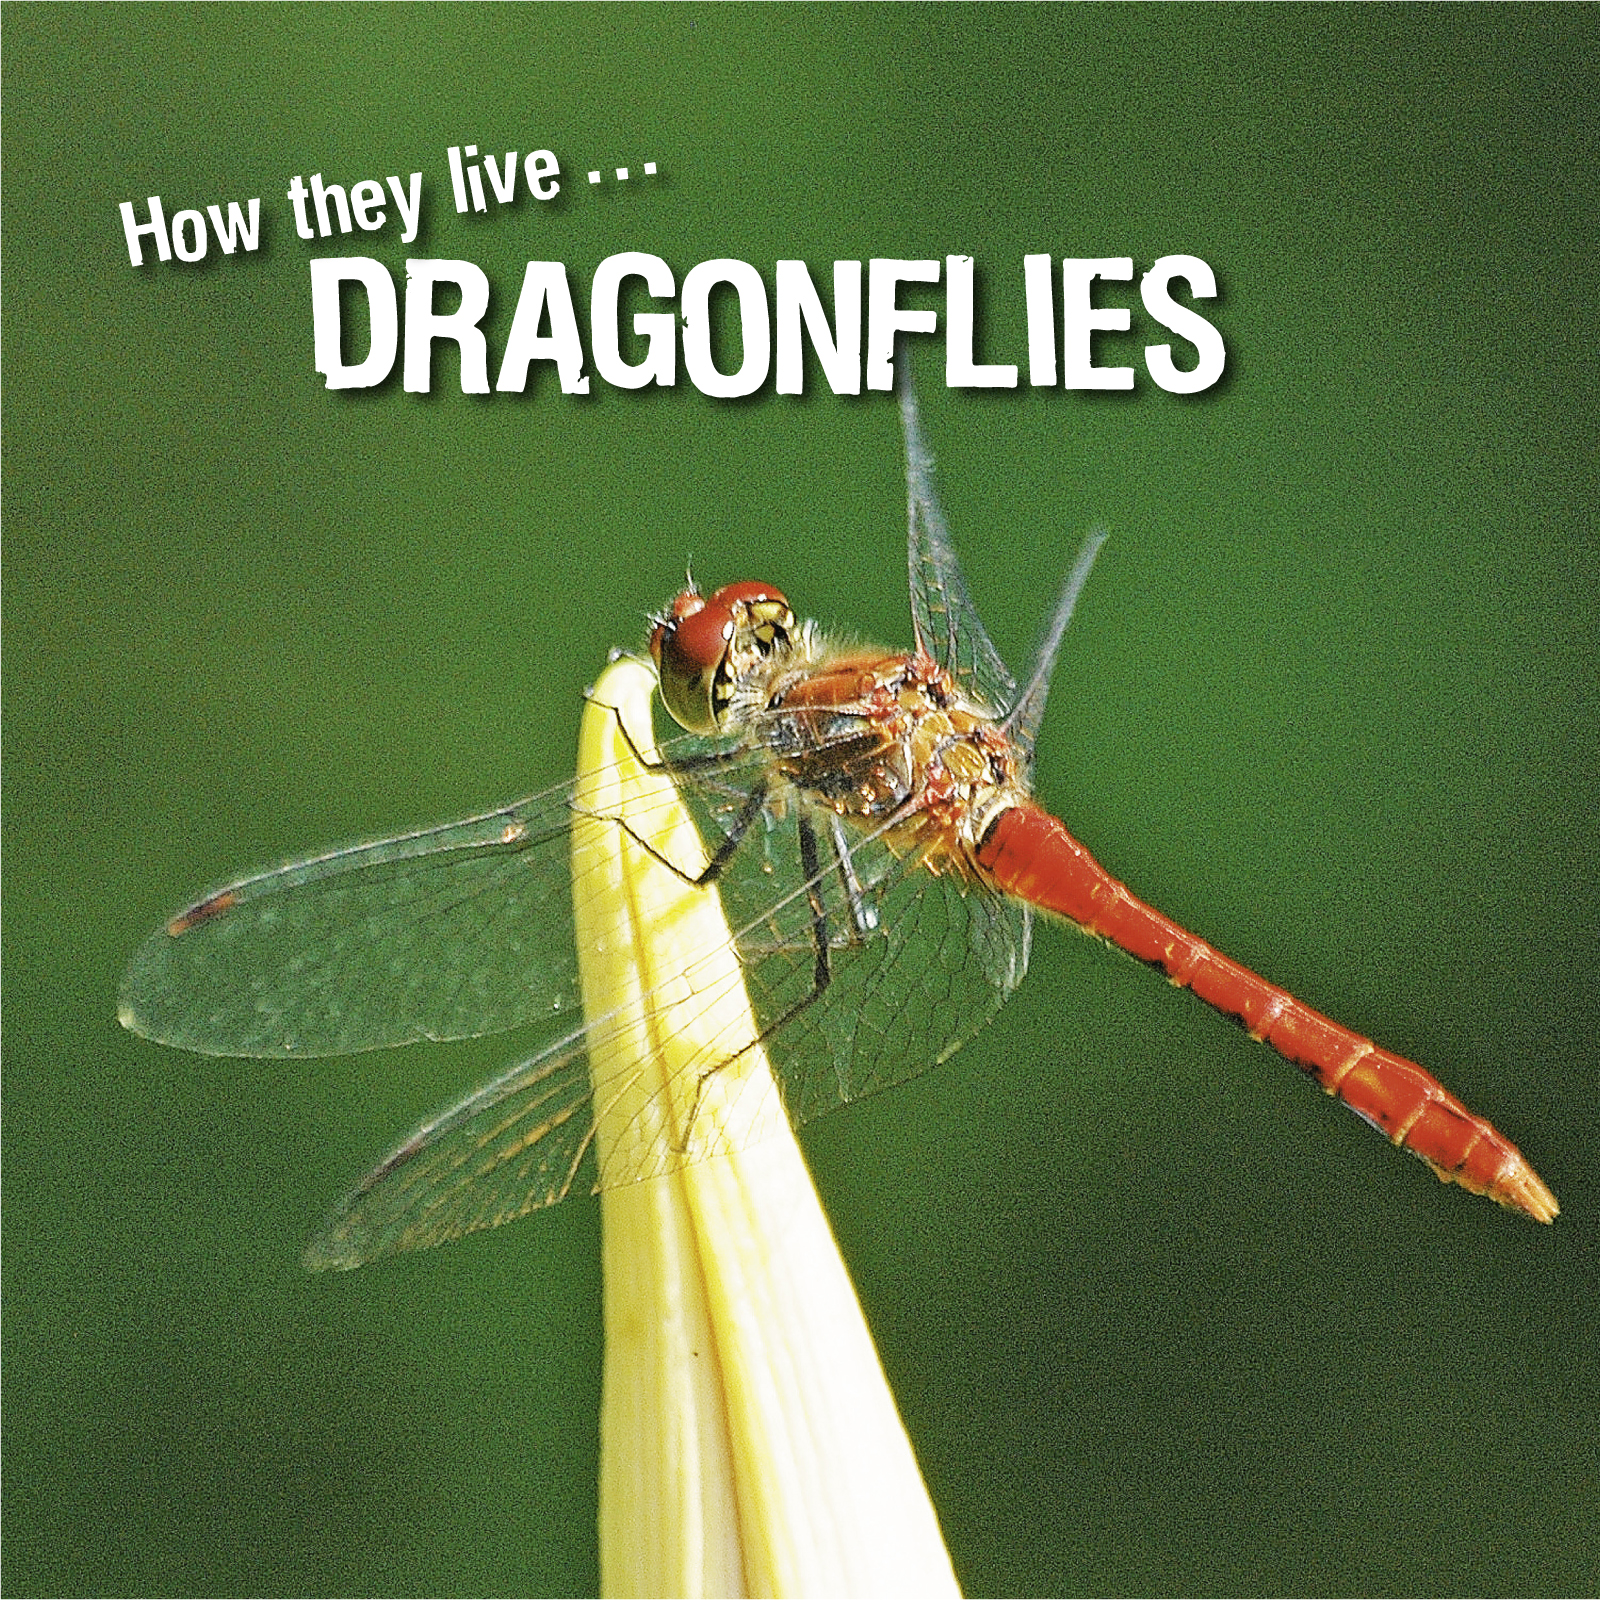 How they live... Dragonflies, Learn All There Is to Know About These Animals!